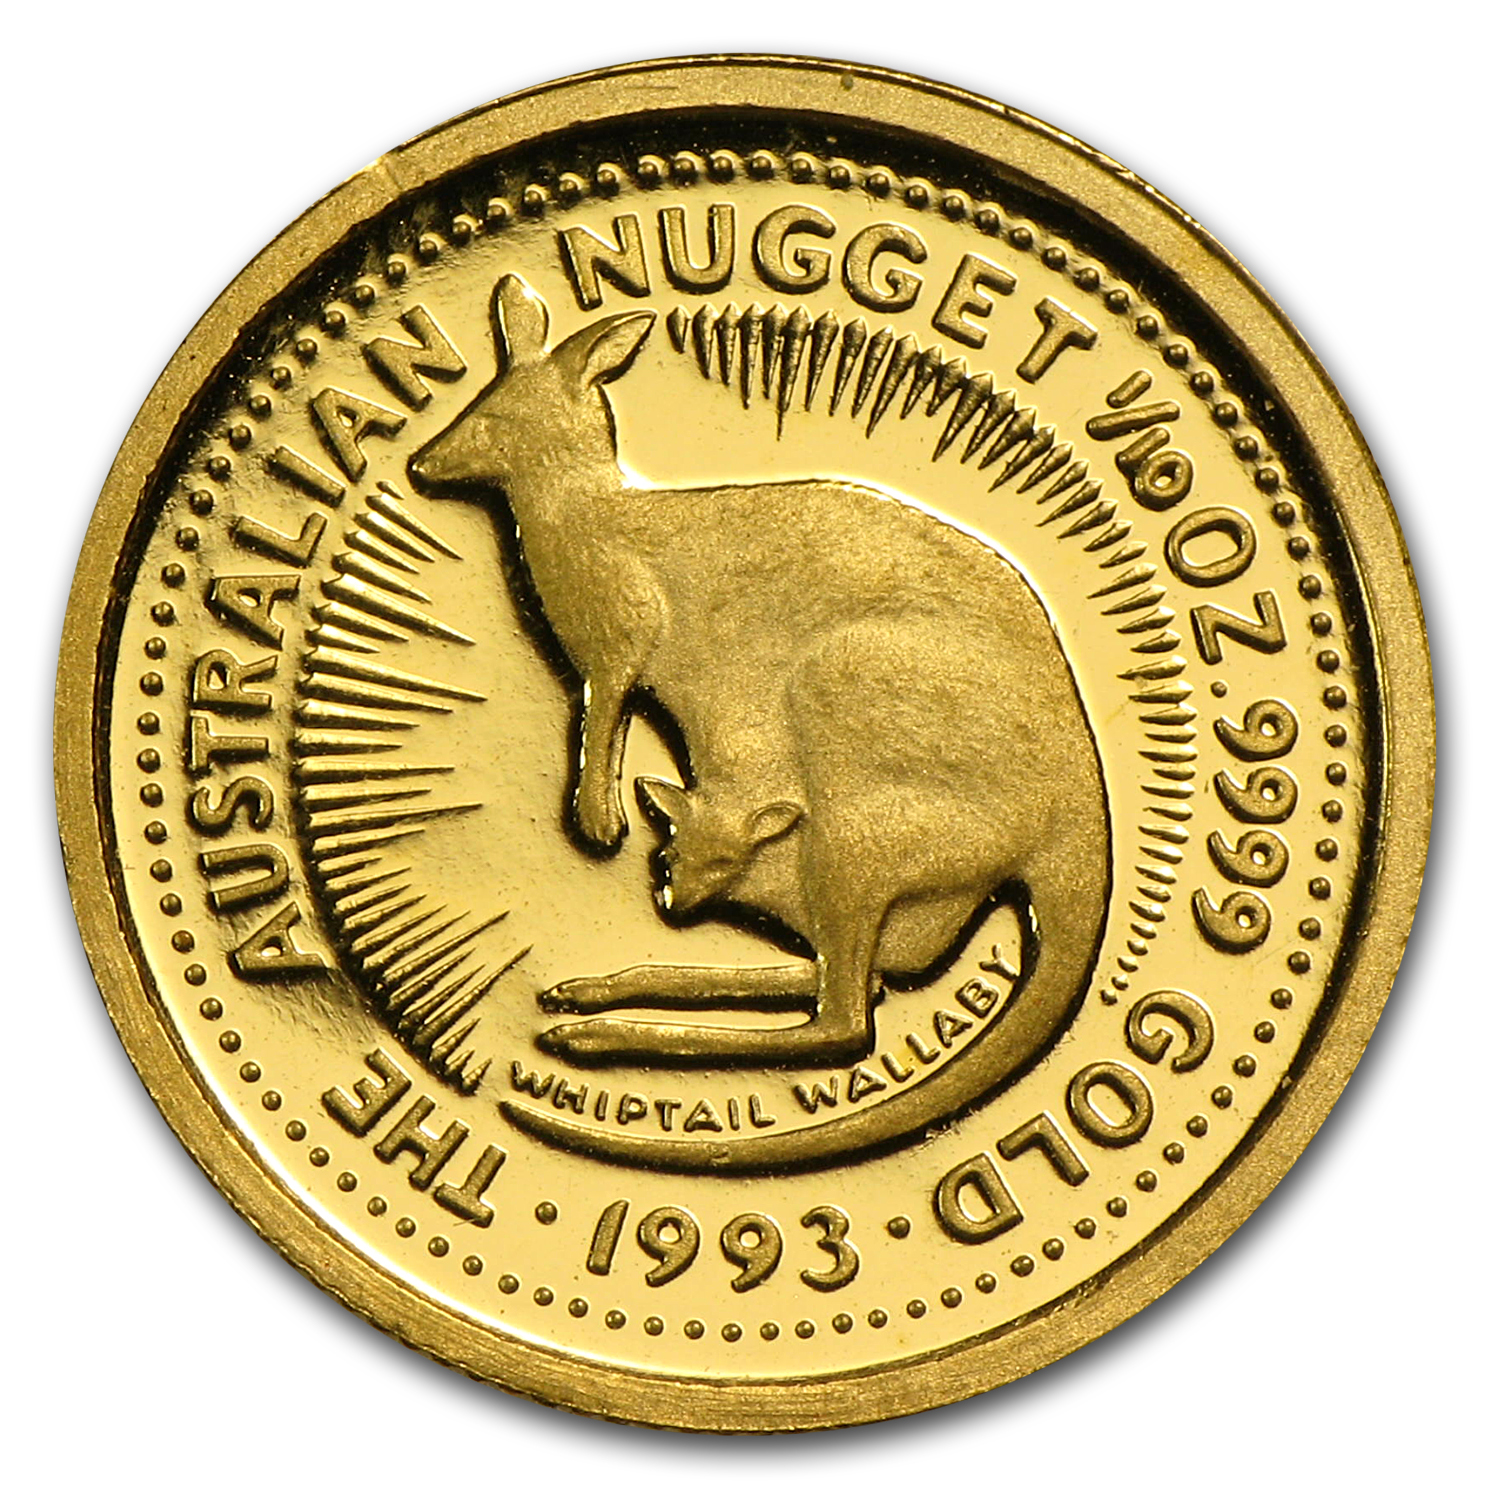 1993 Australia 1/10 oz Proof Gold Nugget